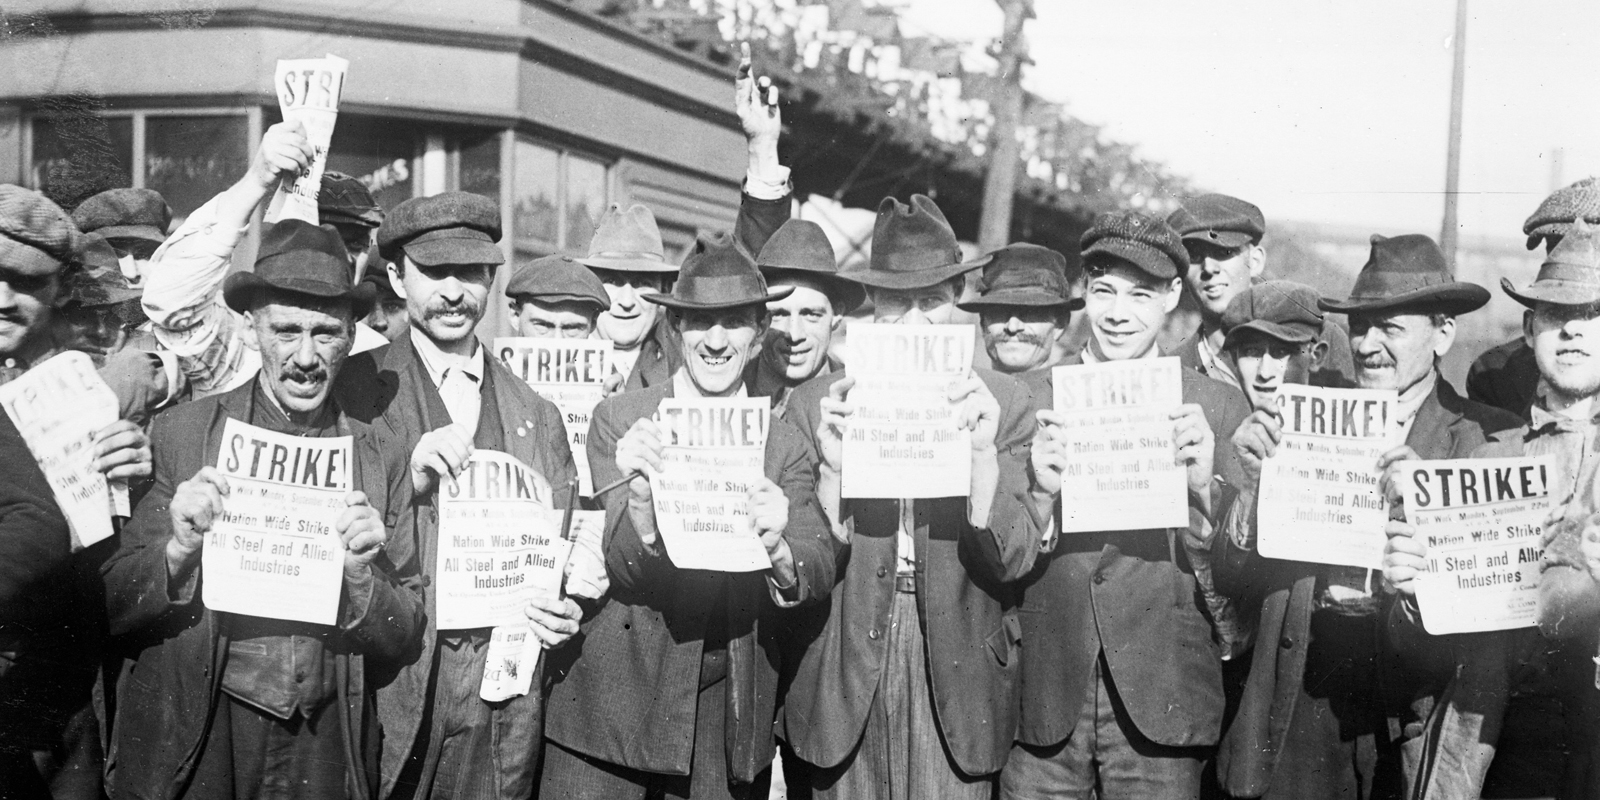 Striking steel mill workers holding bulletins, Chicago, Illinois, September 22, 1919. ExplorePAhistory.com